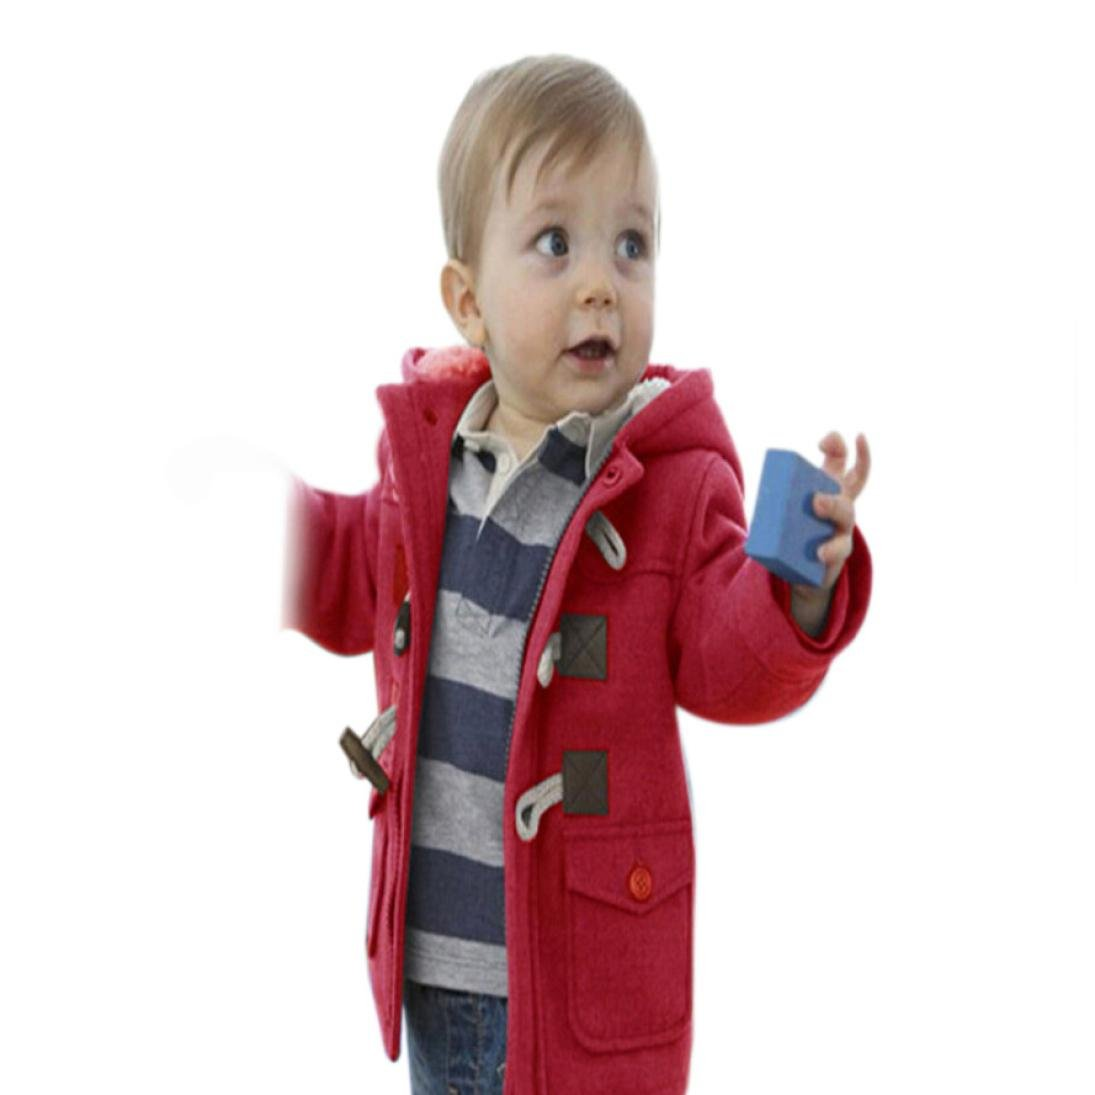 Toddler Baby Kids Girl Boy Winter Warm Horn Coat Jacket Hooded SnowSuit Outwear